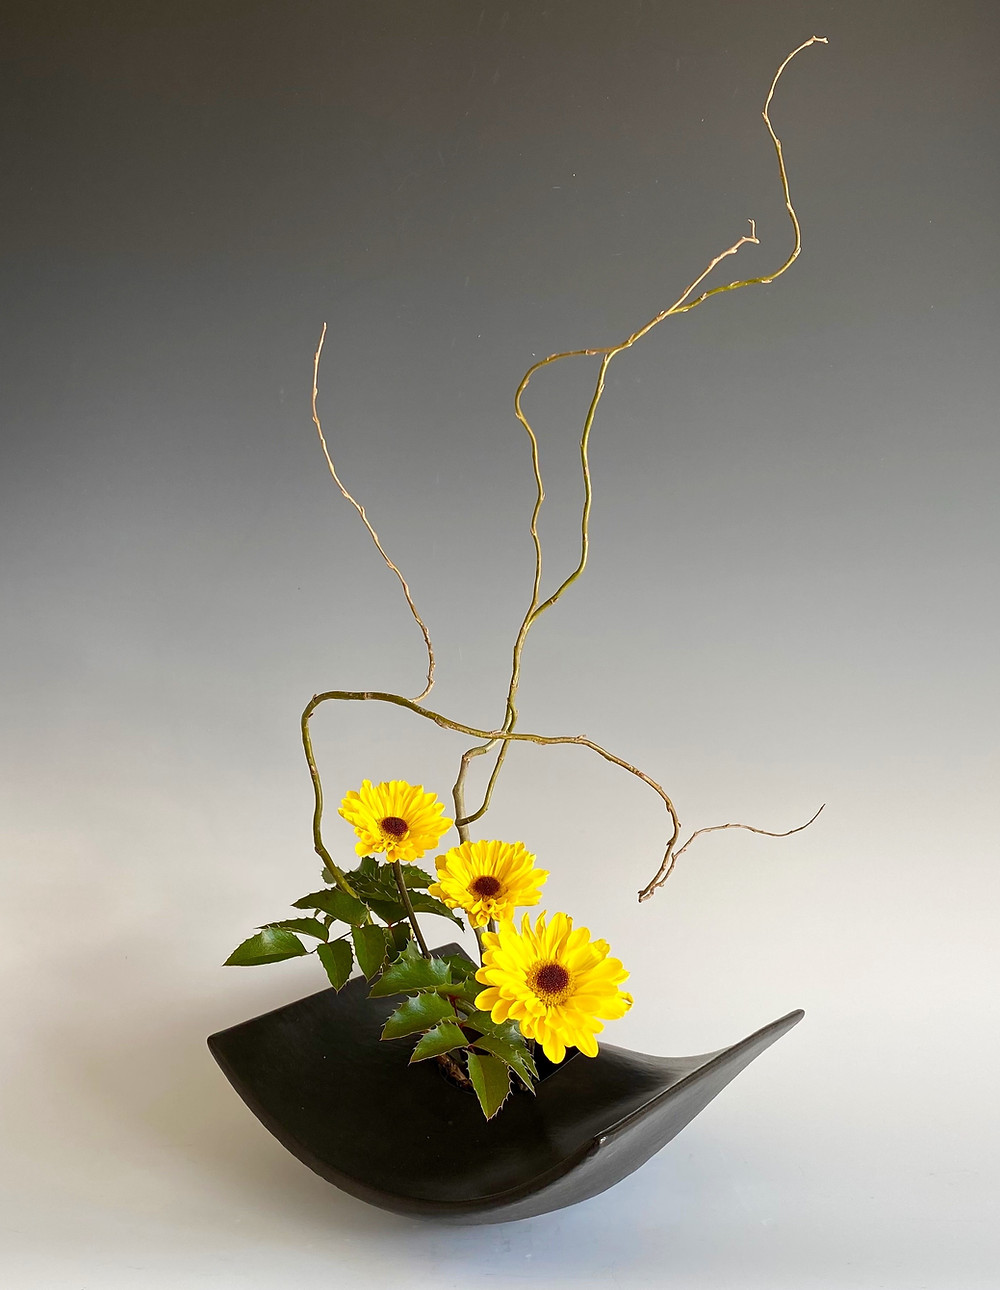 Japanese ikebana in modern vase with curly willow and chrysanthemum.